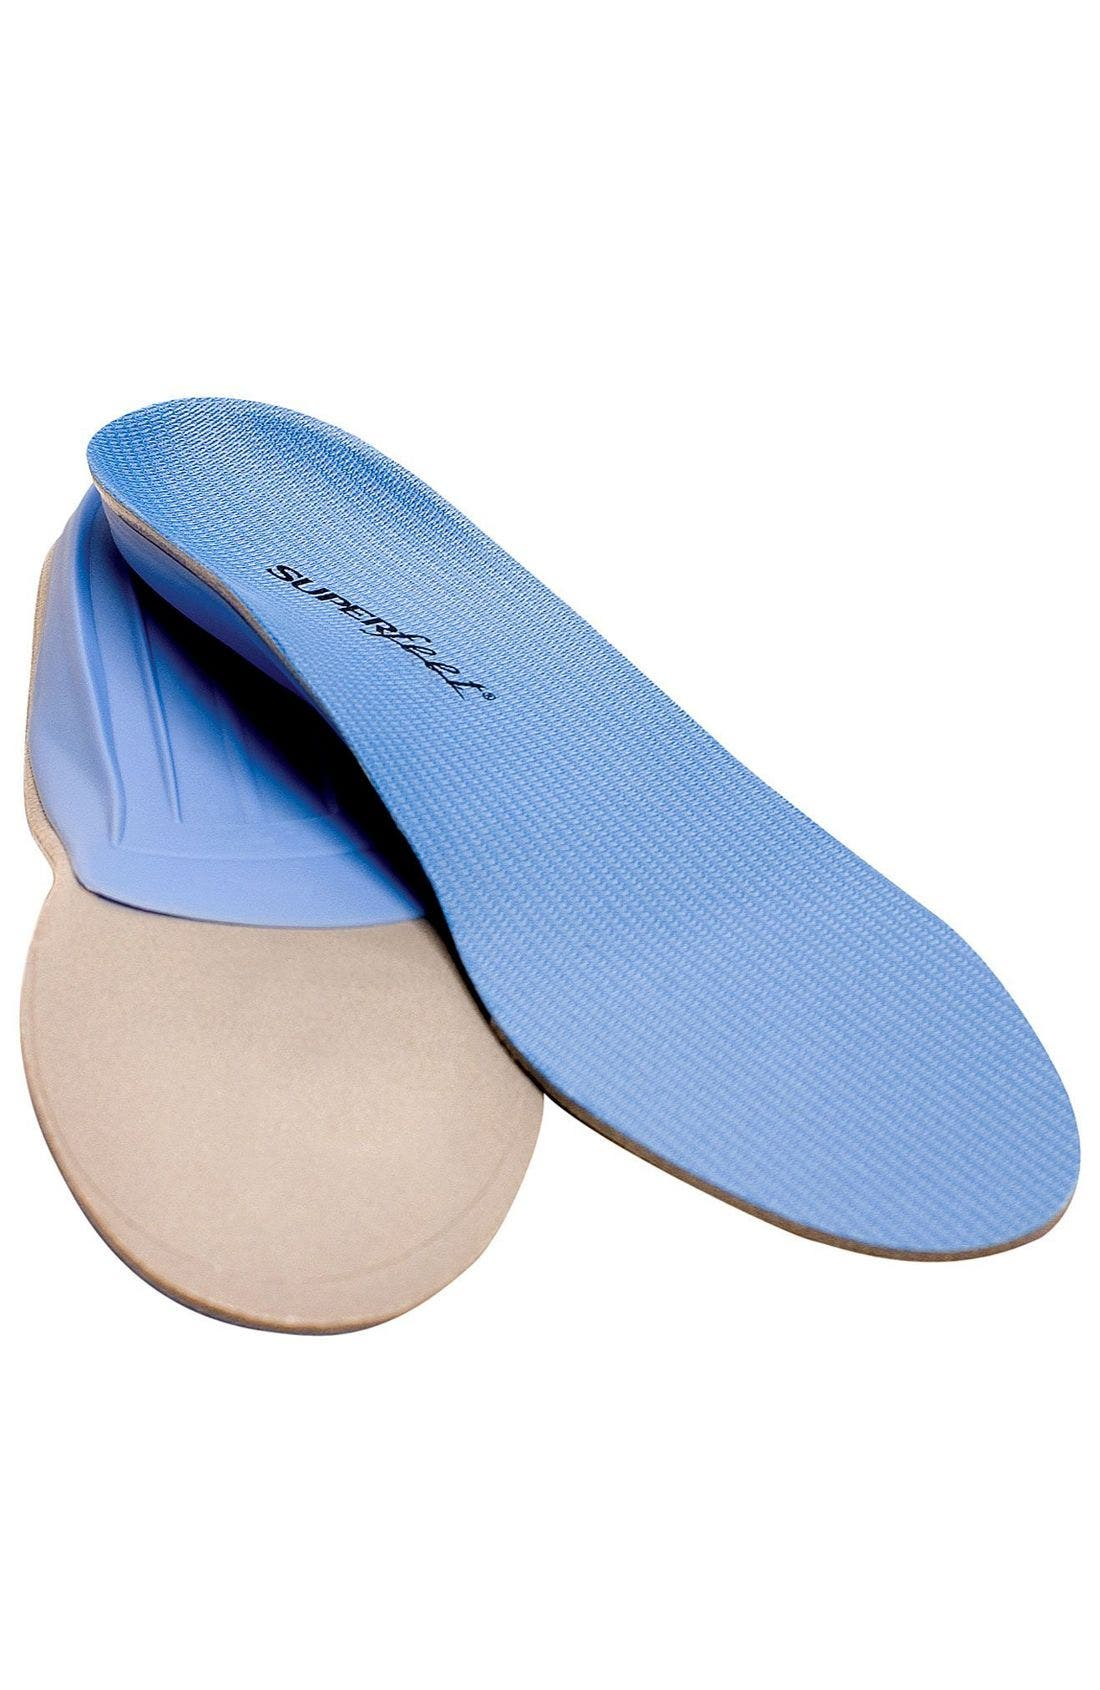 Main Image - Superfeet 'Active Blue' Insoles (Women)